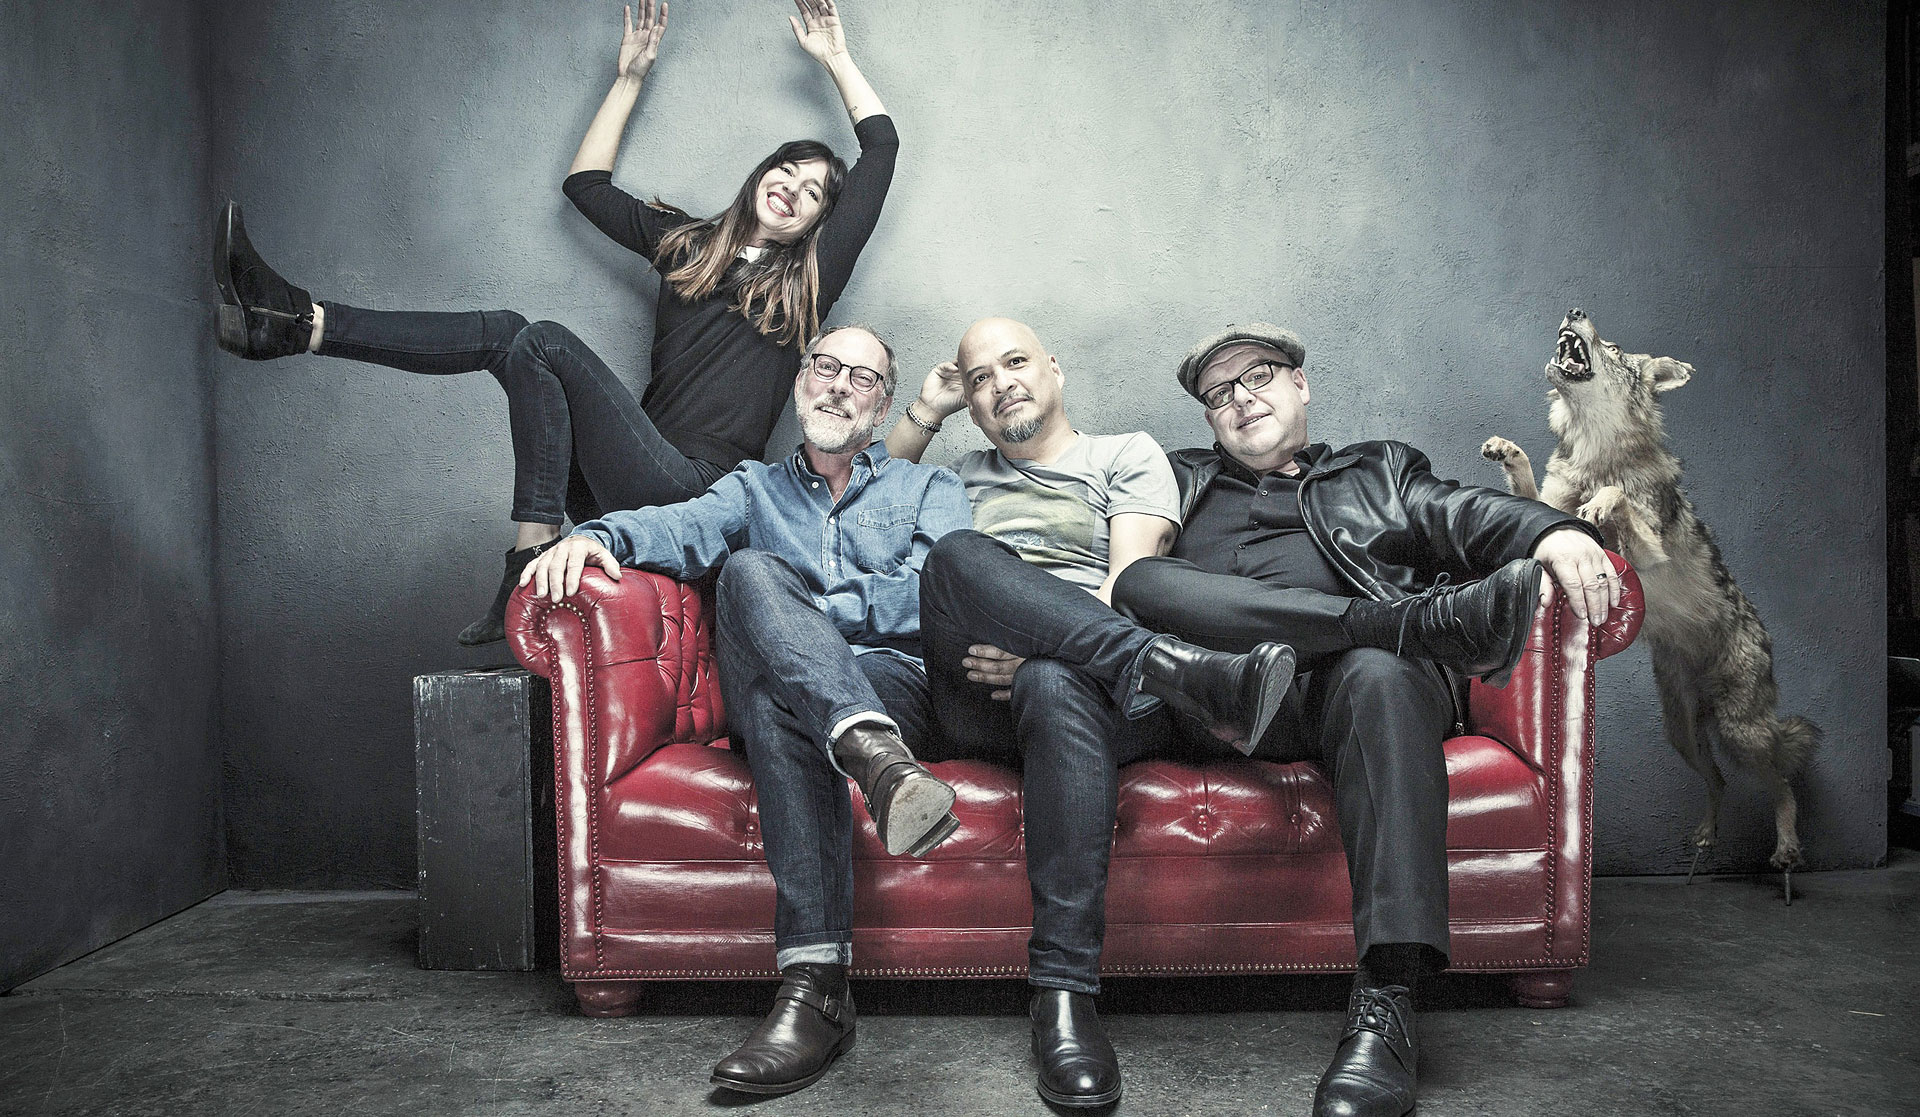 The Pixies — Beneath the Eyrie